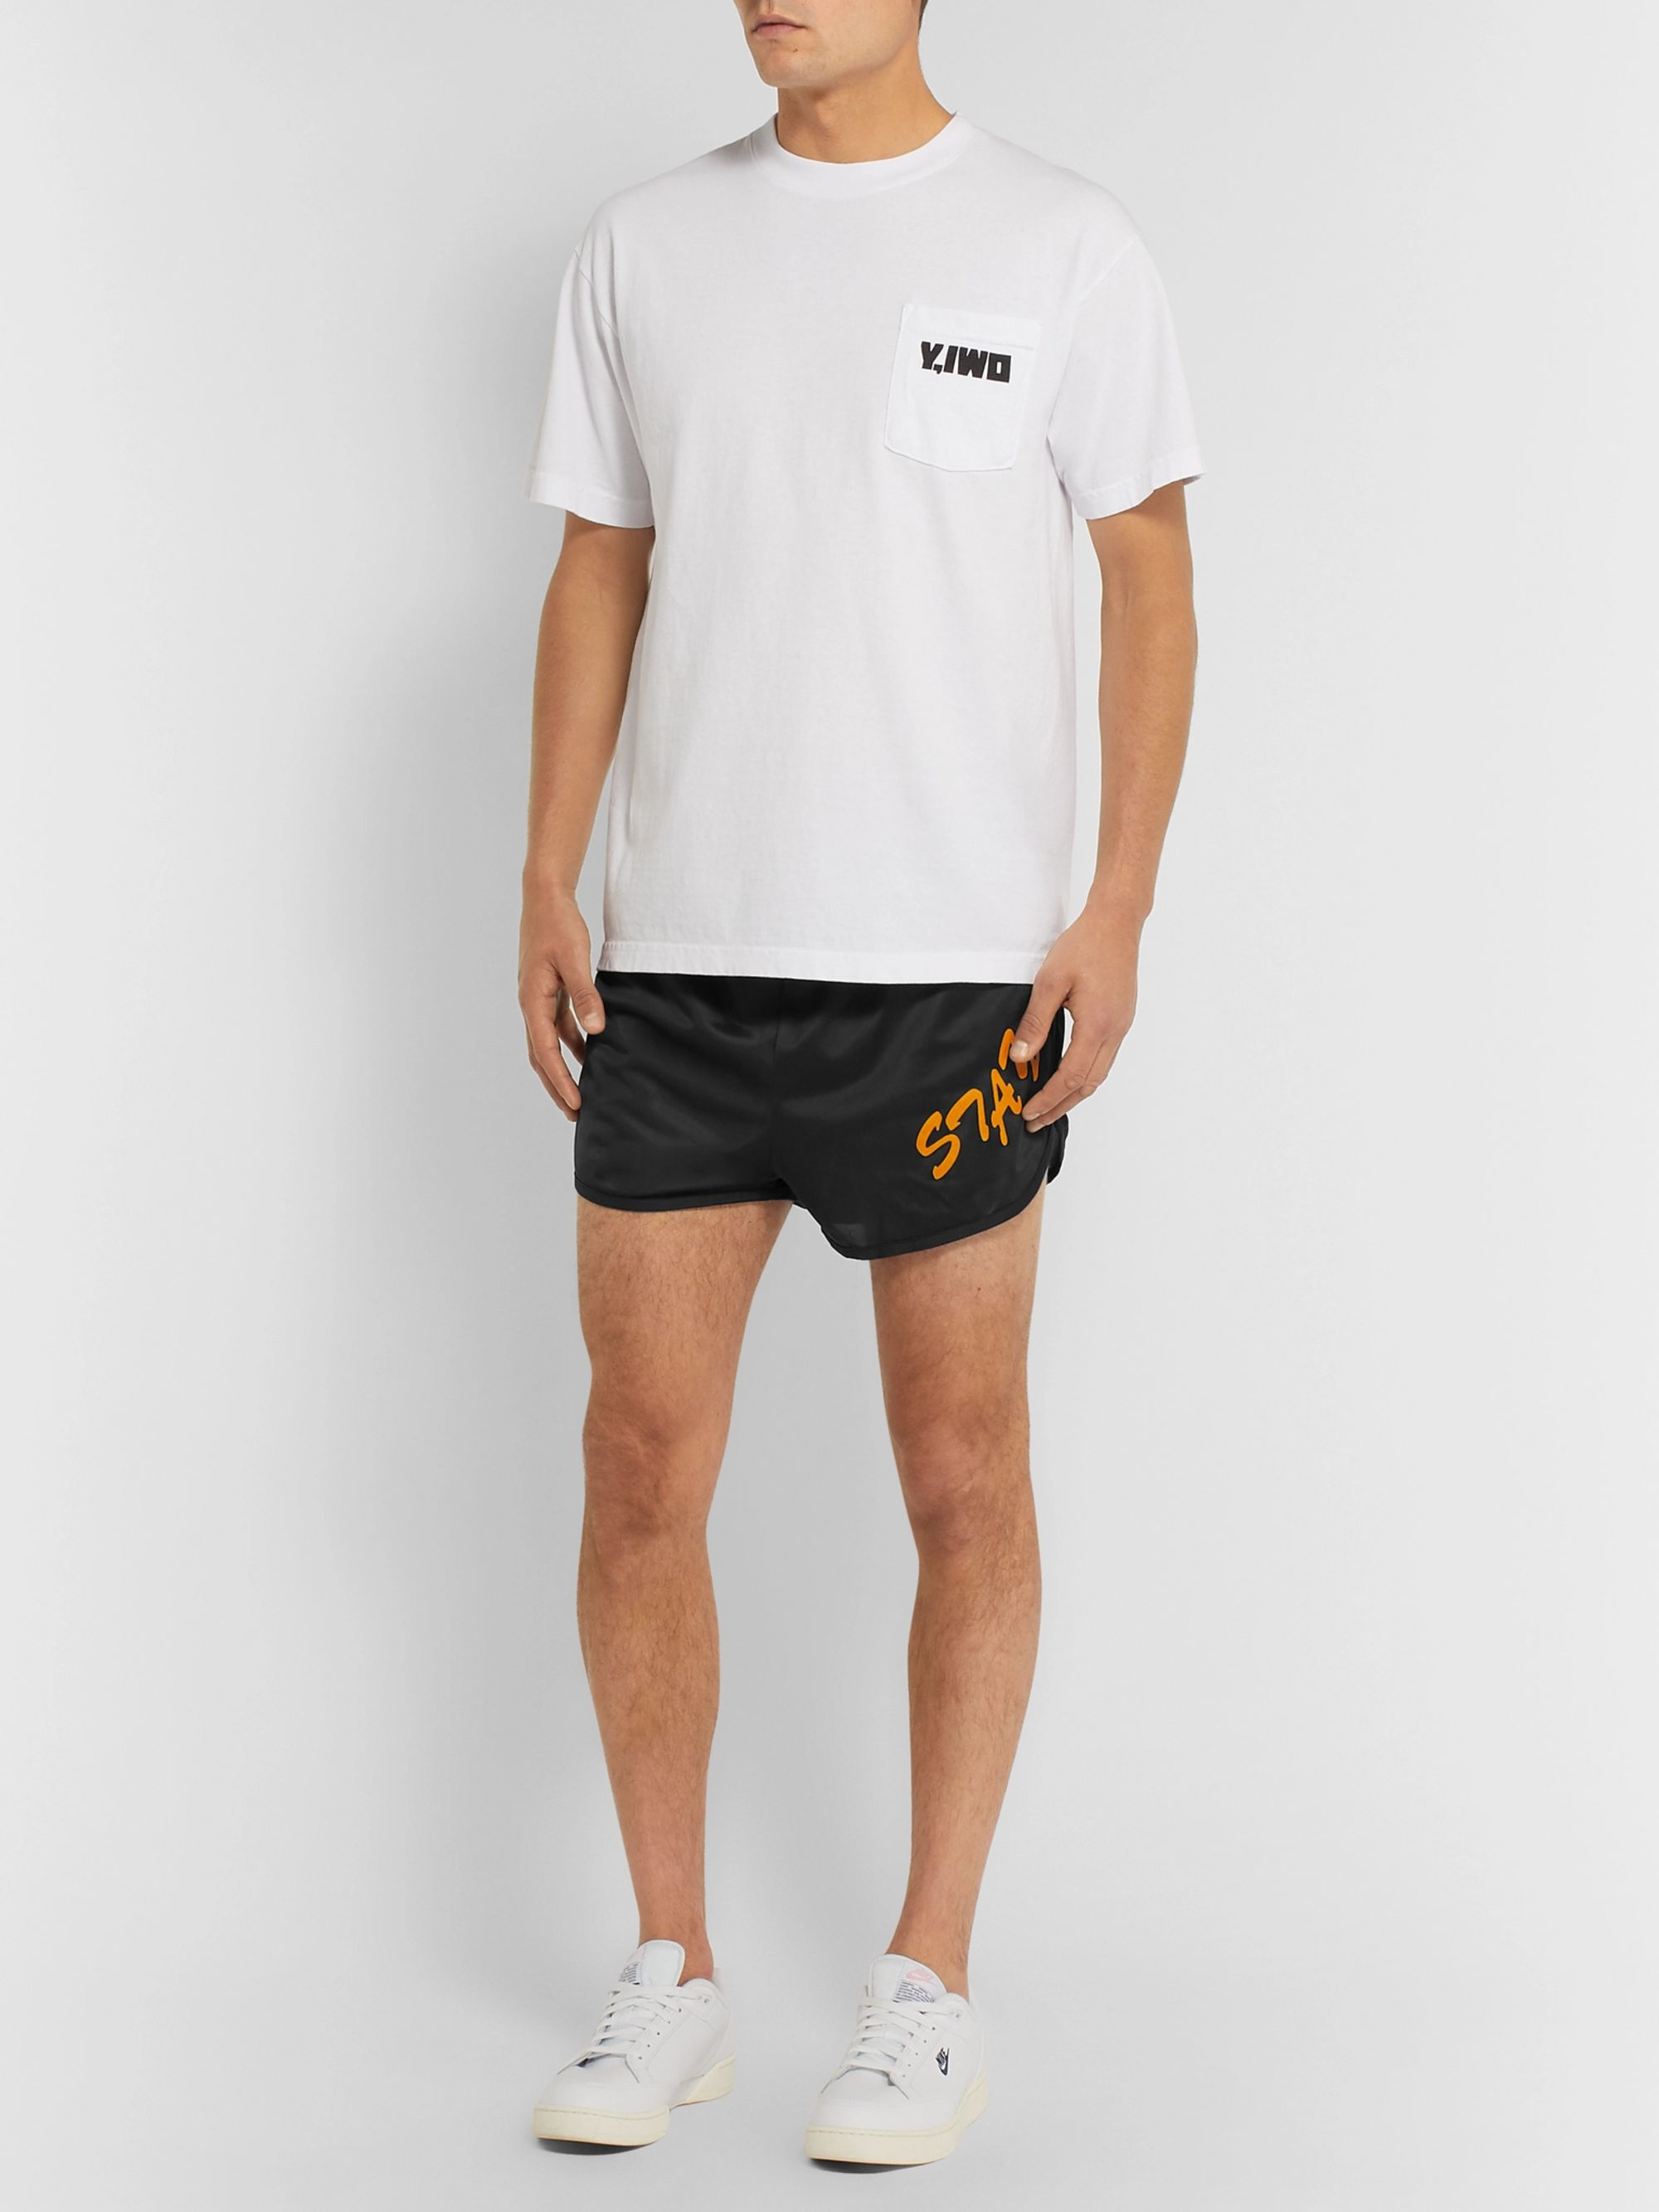 Y,IWO Slim-Fit Printed Nylon Shorts